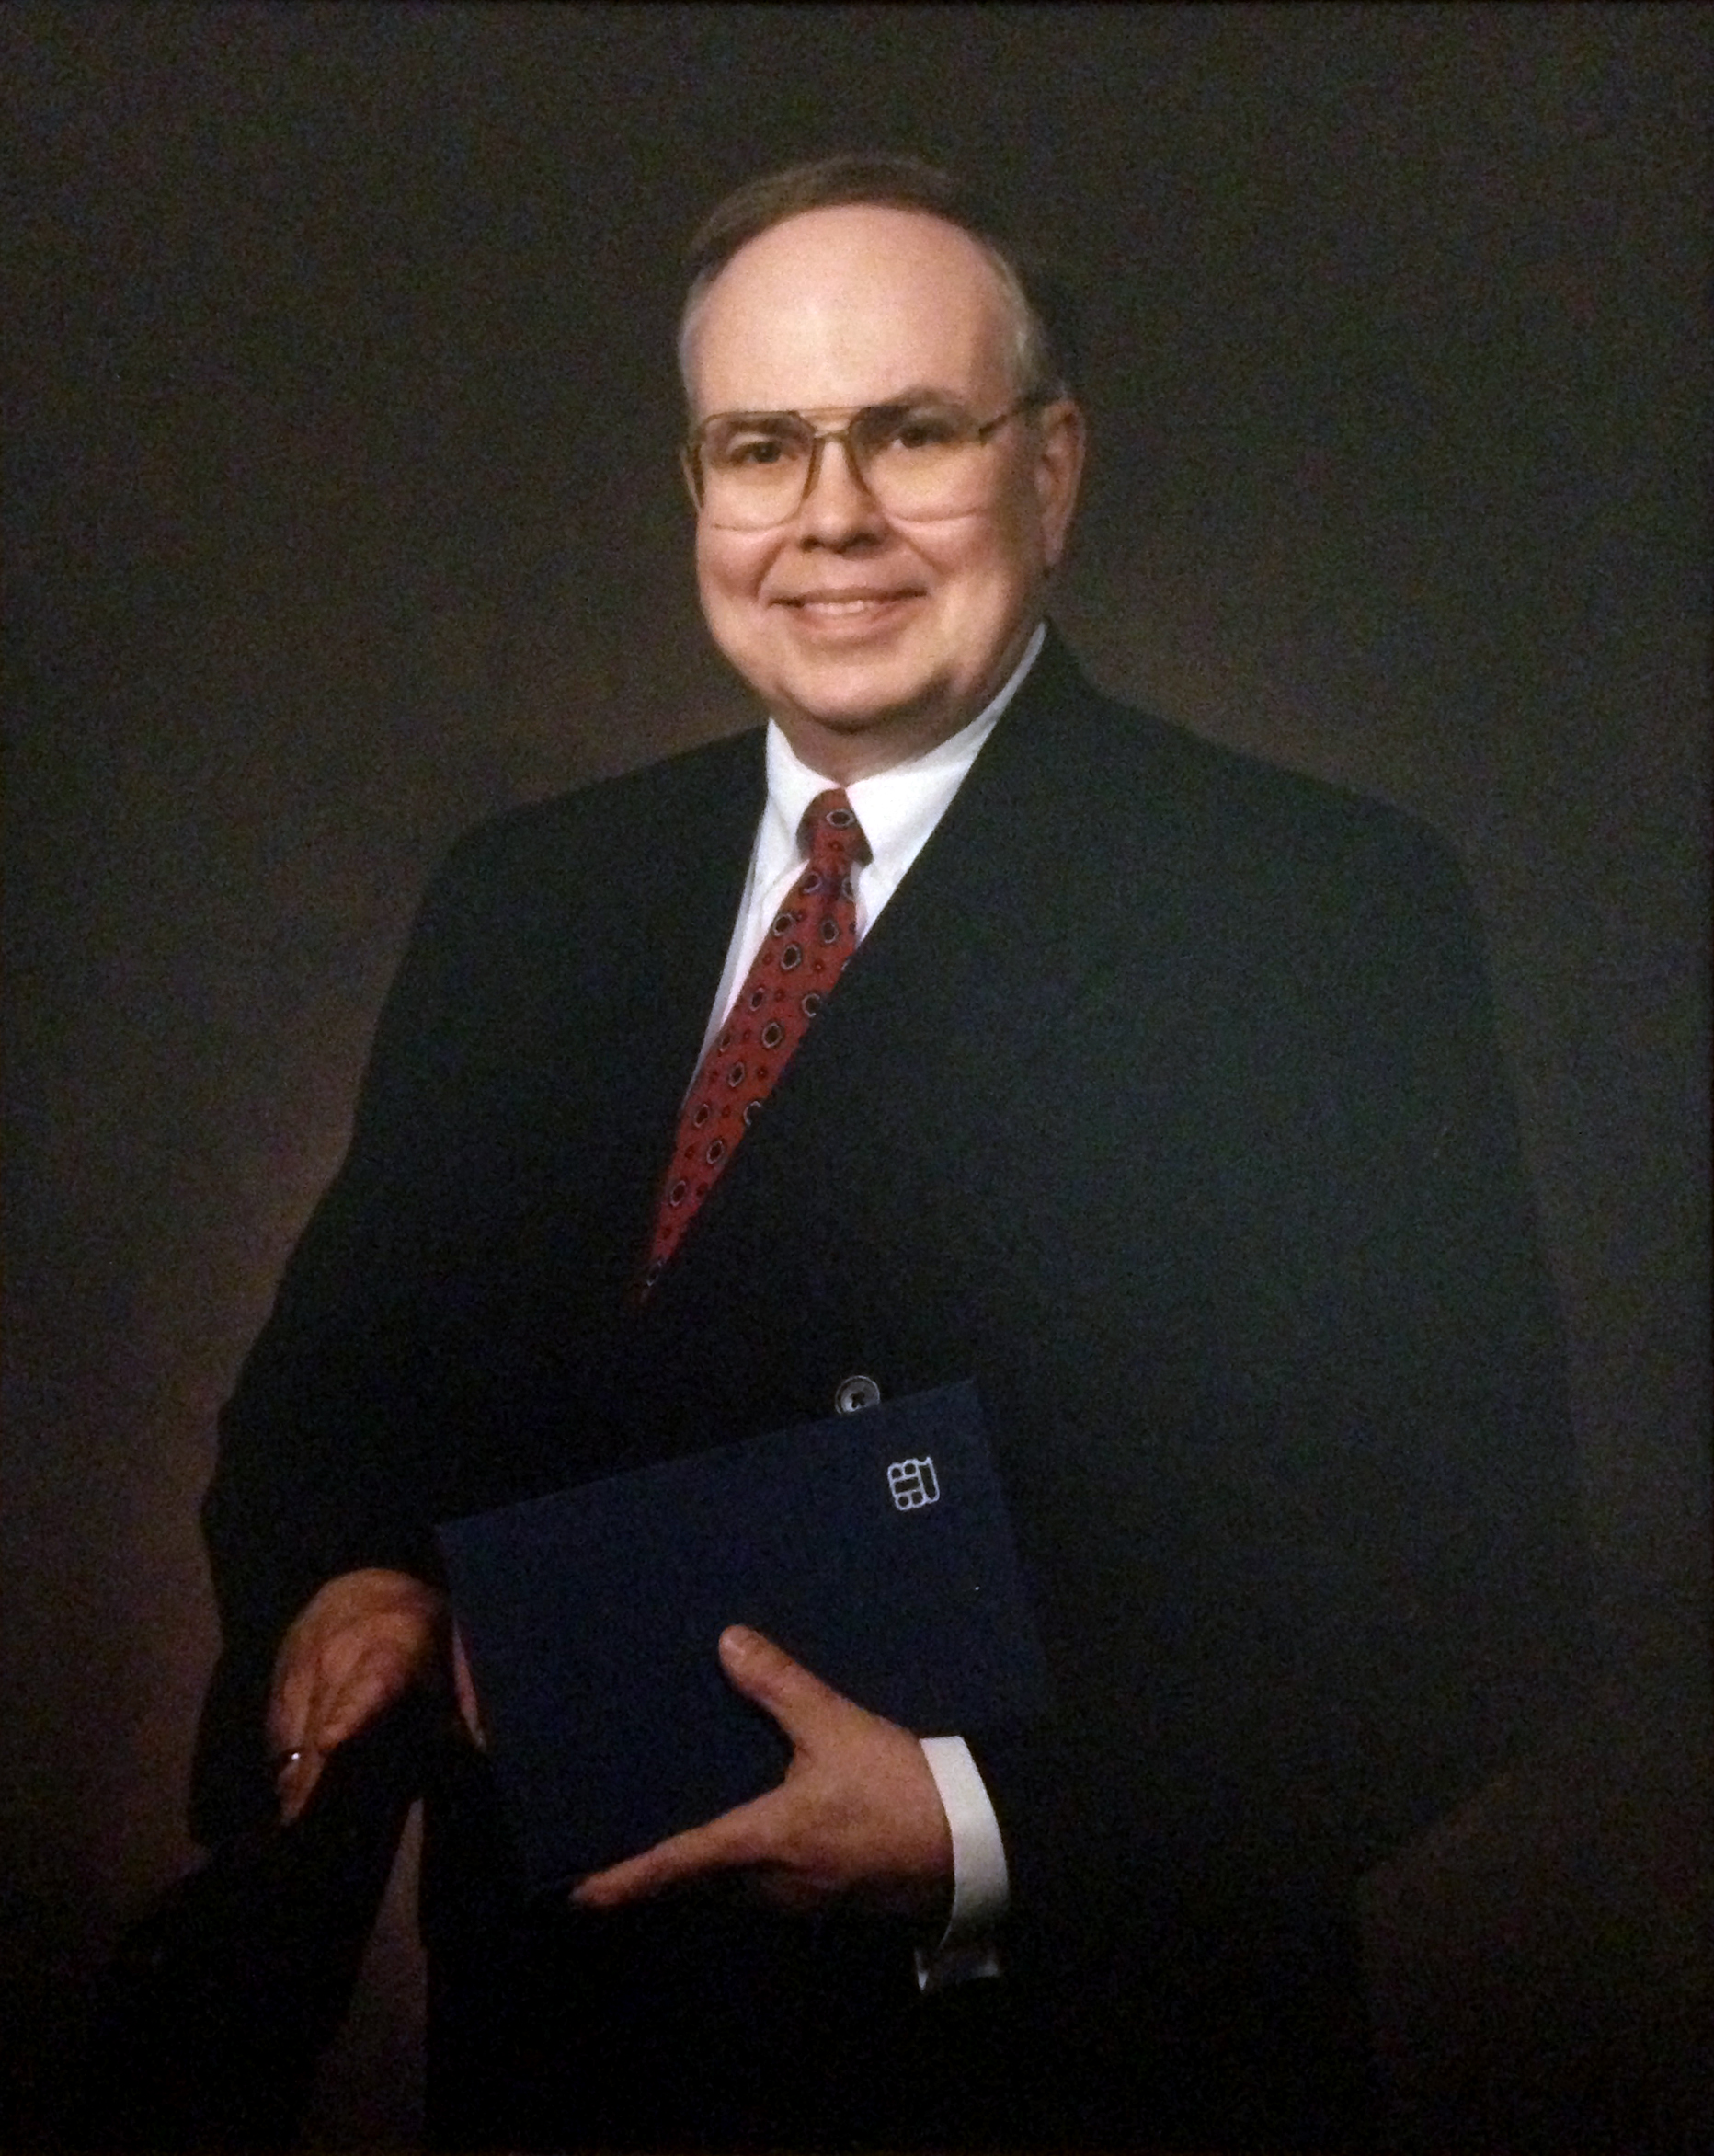 Thomas G. Gutteridge. Dean 1992-2003.